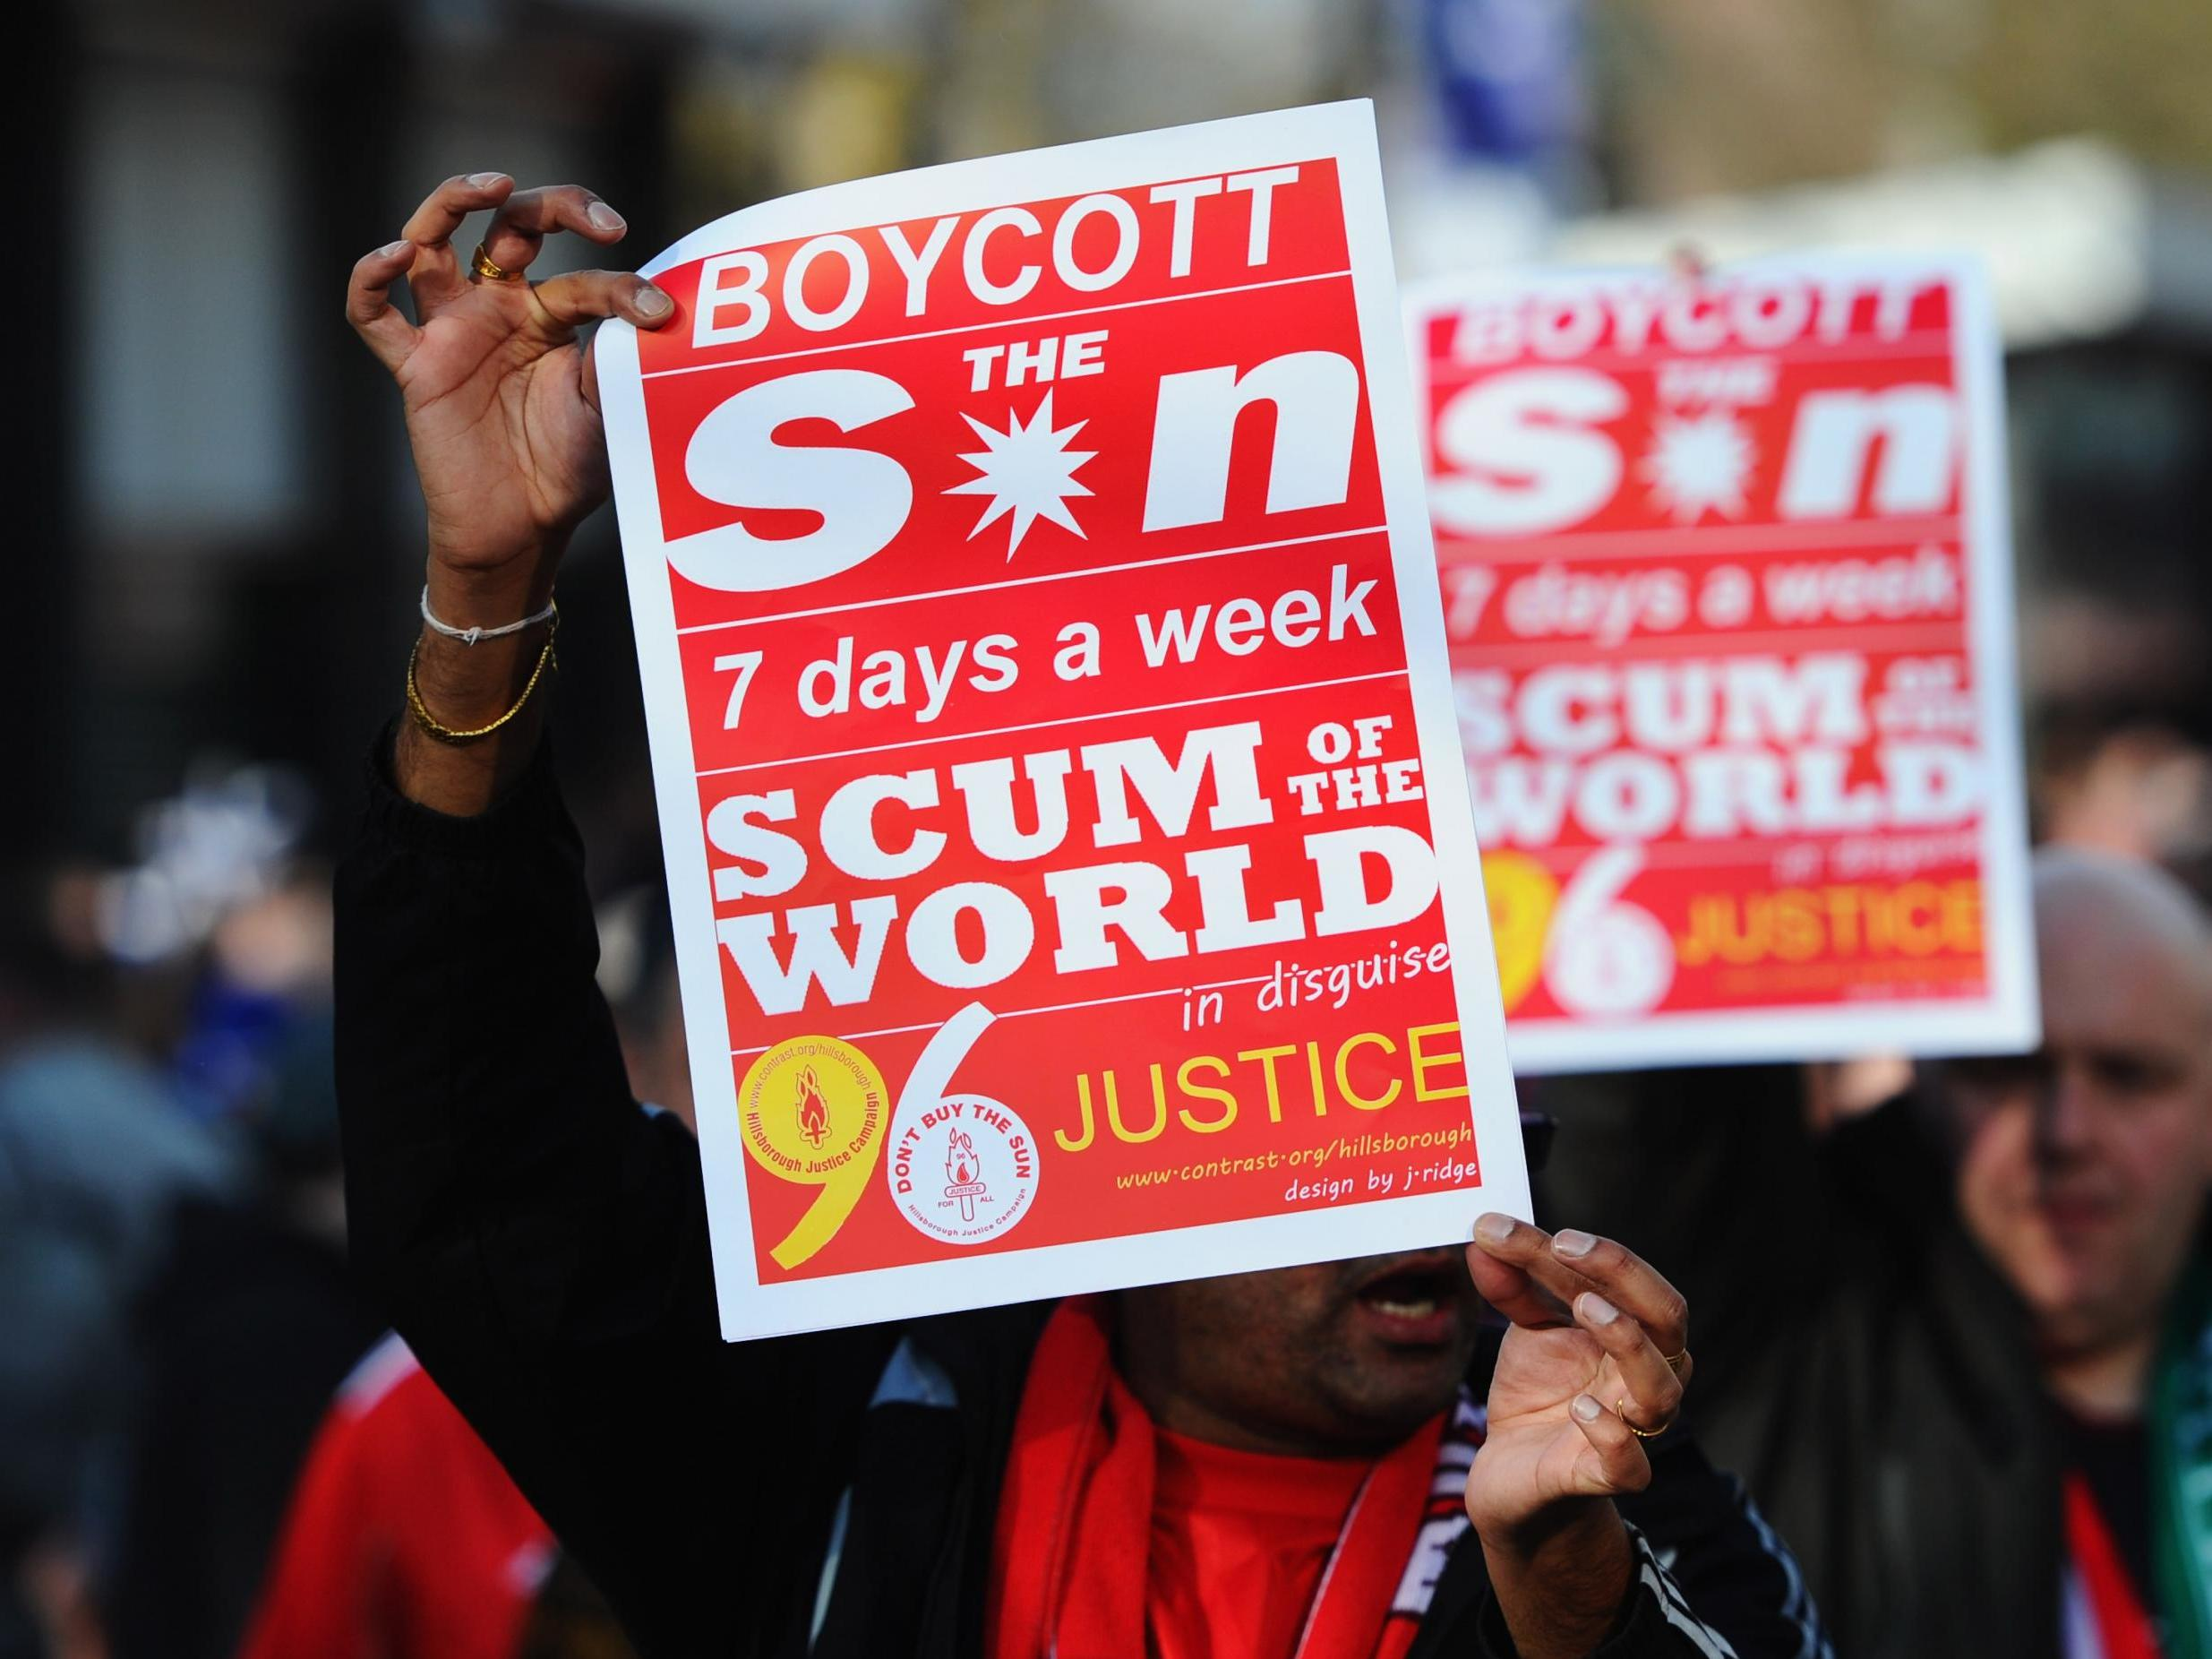 Brexit: Sun boycott helped to cut Euroscepticism in Merseyside, study suggests